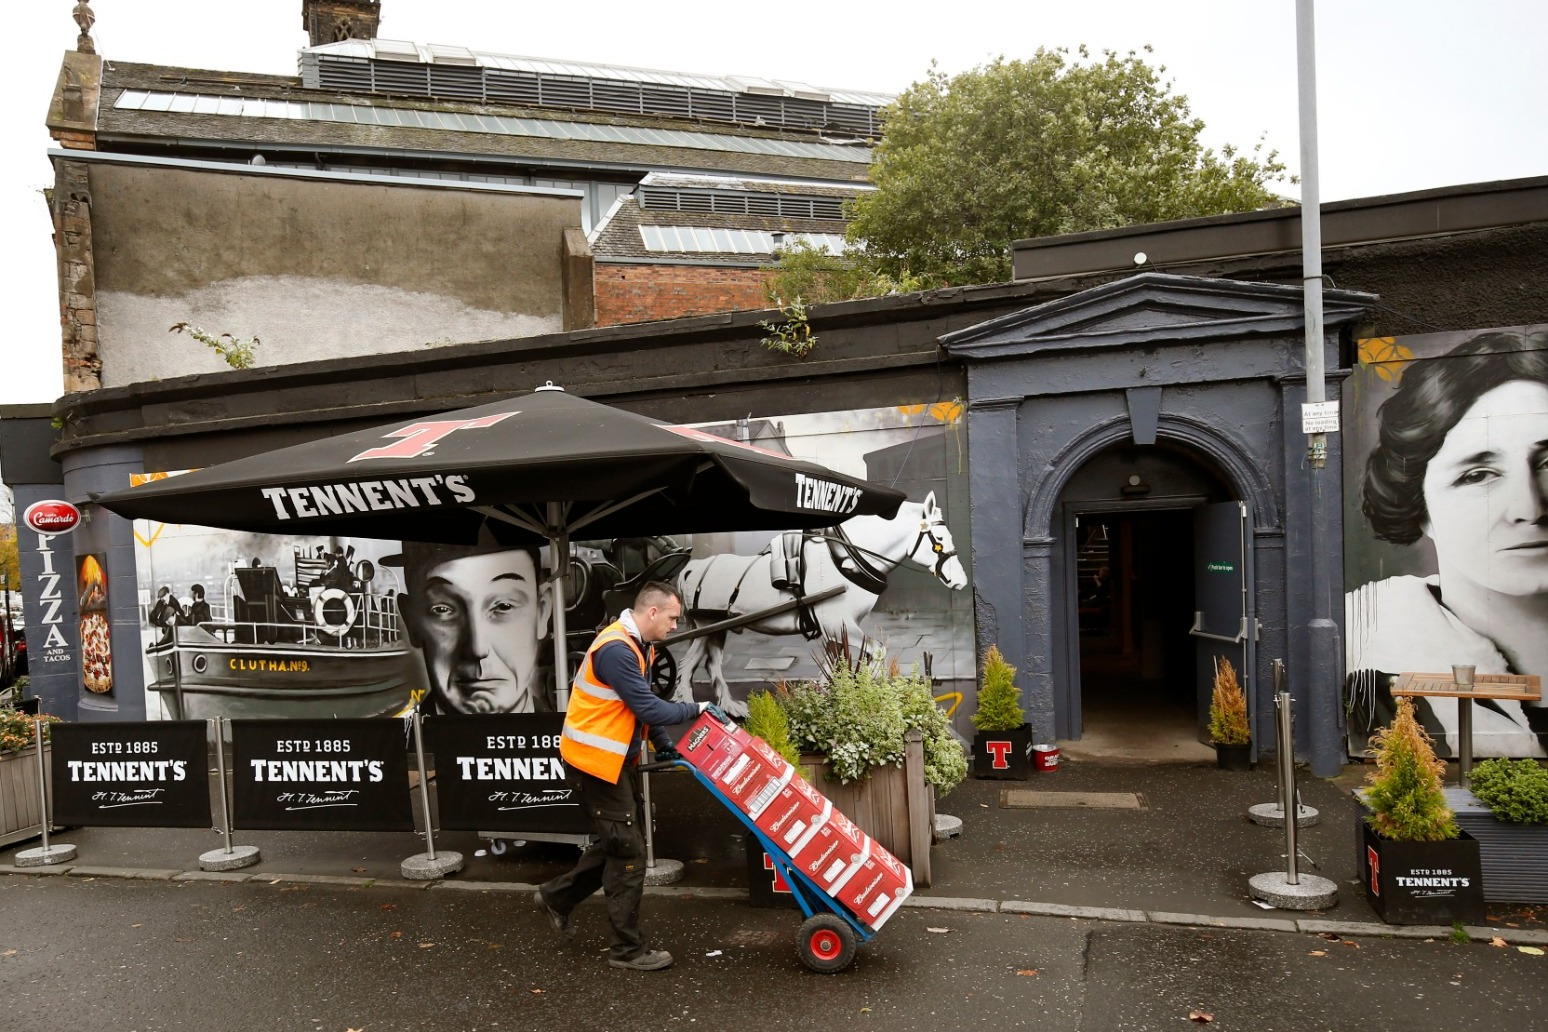 The findings of the report into the helicopter crash at the Clutha Bar in Glasgow has been published.